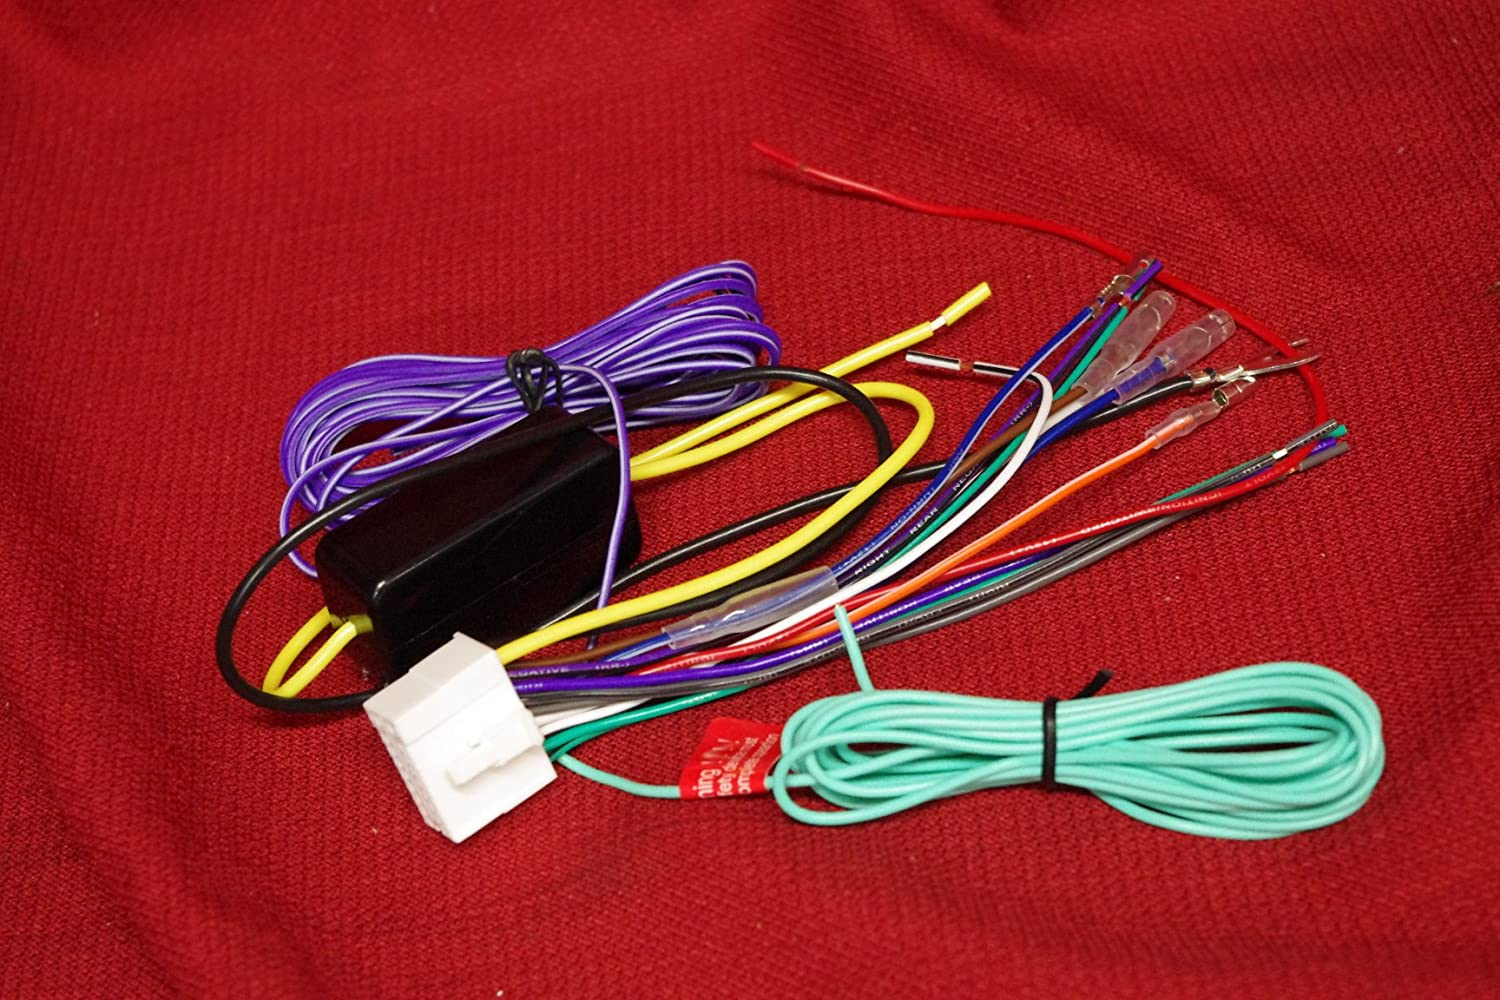 Amazon.com: WIRE HARNESS 18 PIN FOR CLARION MAX685BT VZ709 ... on